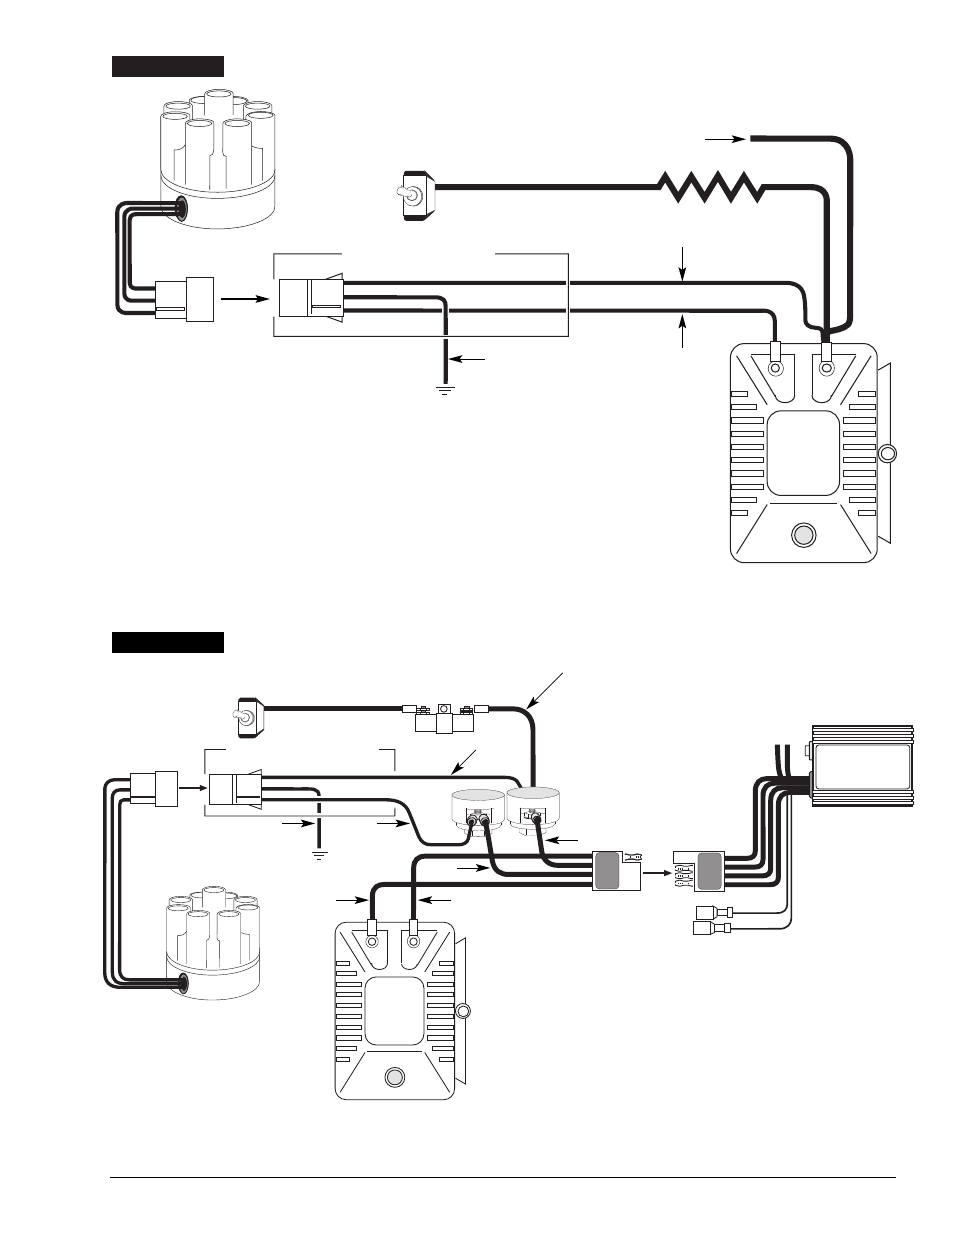 mallory ignition mallory unilite distributor page3?resize=665%2C861 promaster wiring diagram mallory ignition wiring diagram harley mallory unilite wiring diagram at soozxer.org